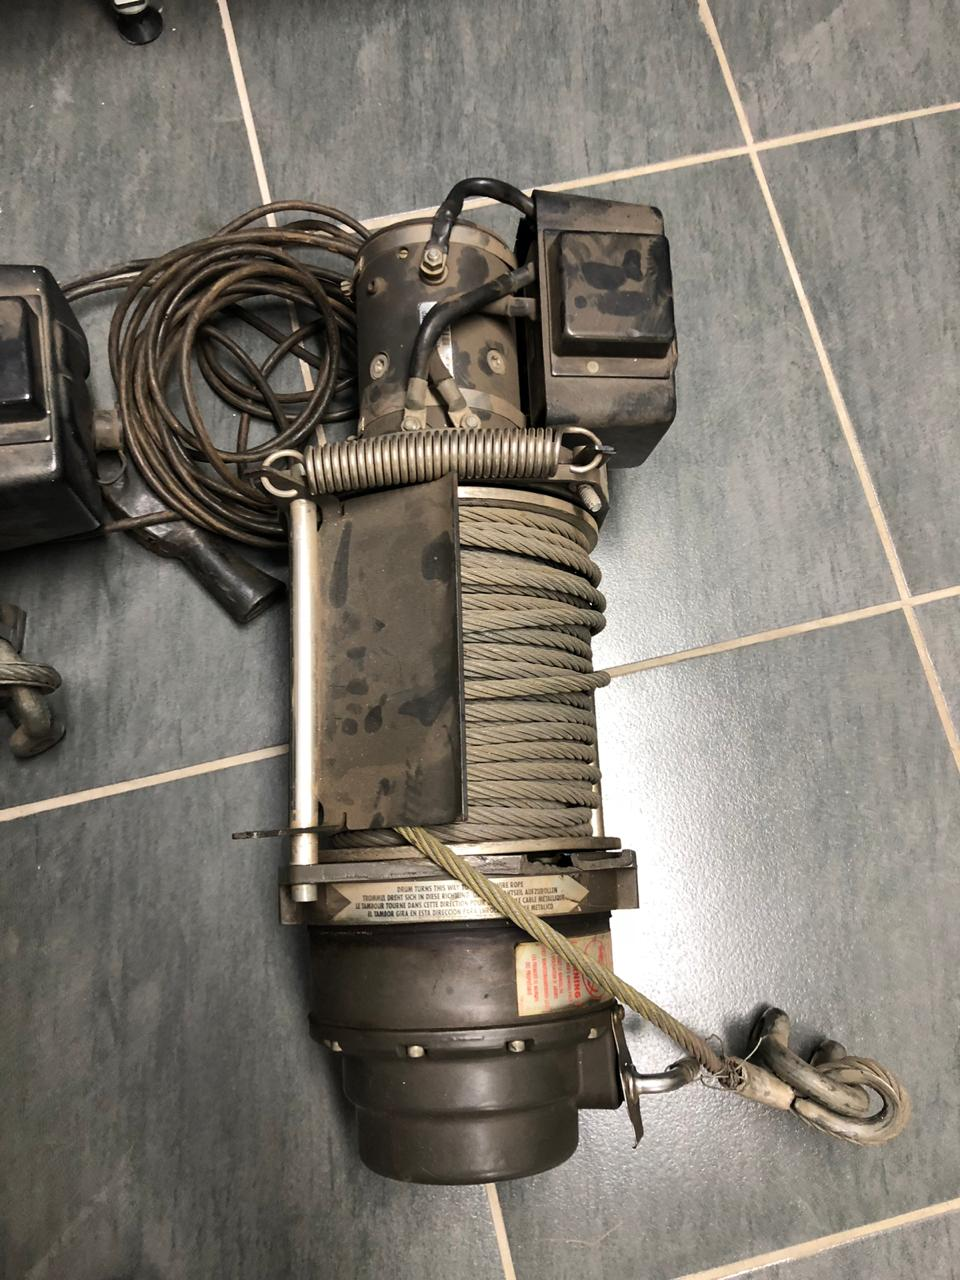 2 NEVER BEEN USED WARN 15T WINCH WITH REMOTE CONTROL AND CABLE